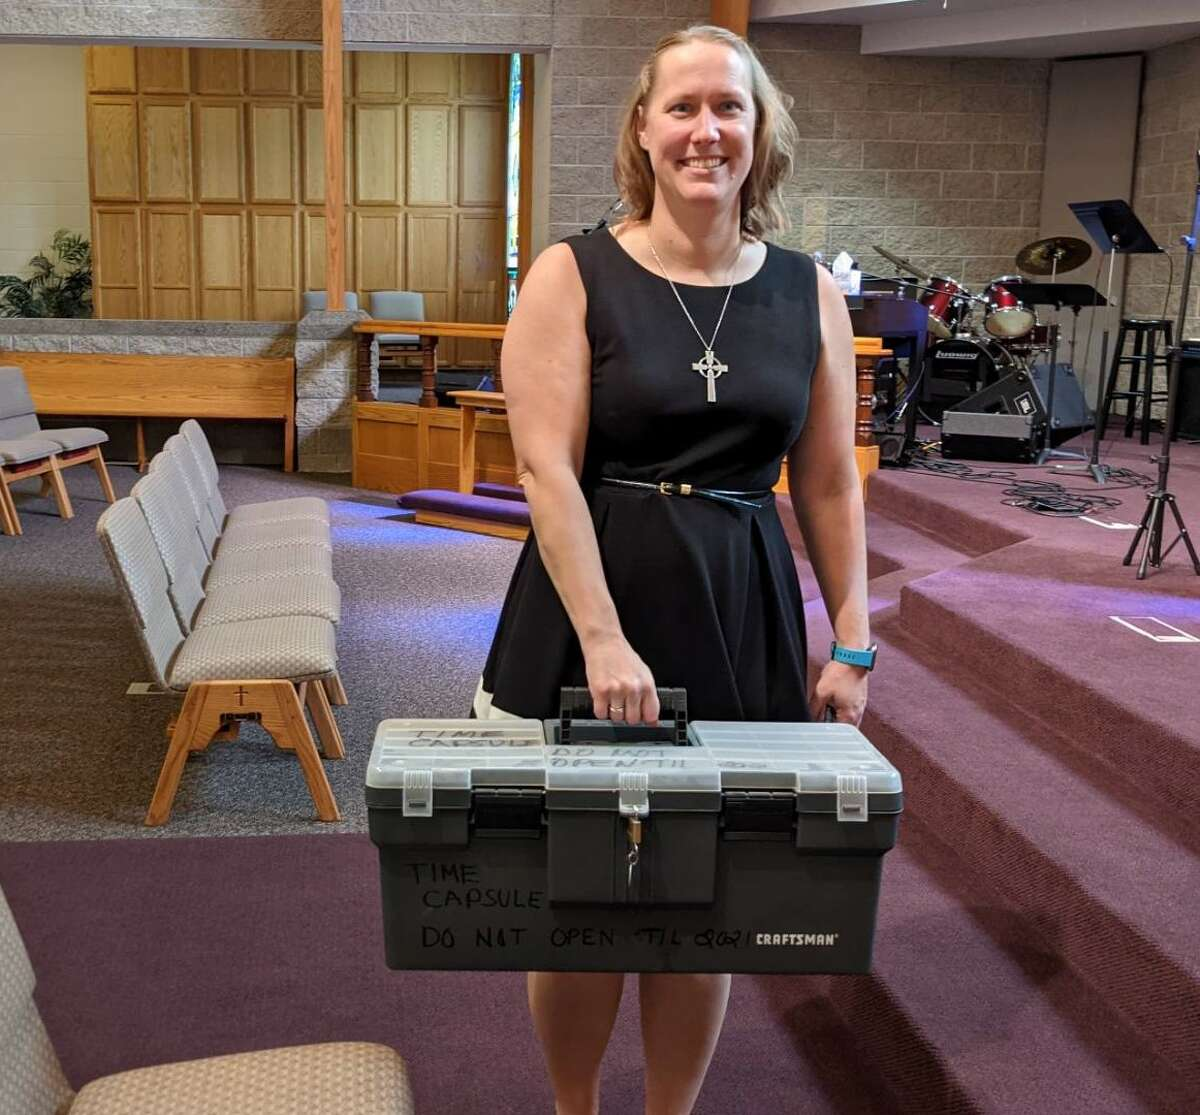 Freeland United Methodist Church Pastor Kayla Roosa holds the time capsule that will be open Sunday, Sept. 19. The capsule, a tackle box, was buried 25 years ago during the church's 150 celebration.